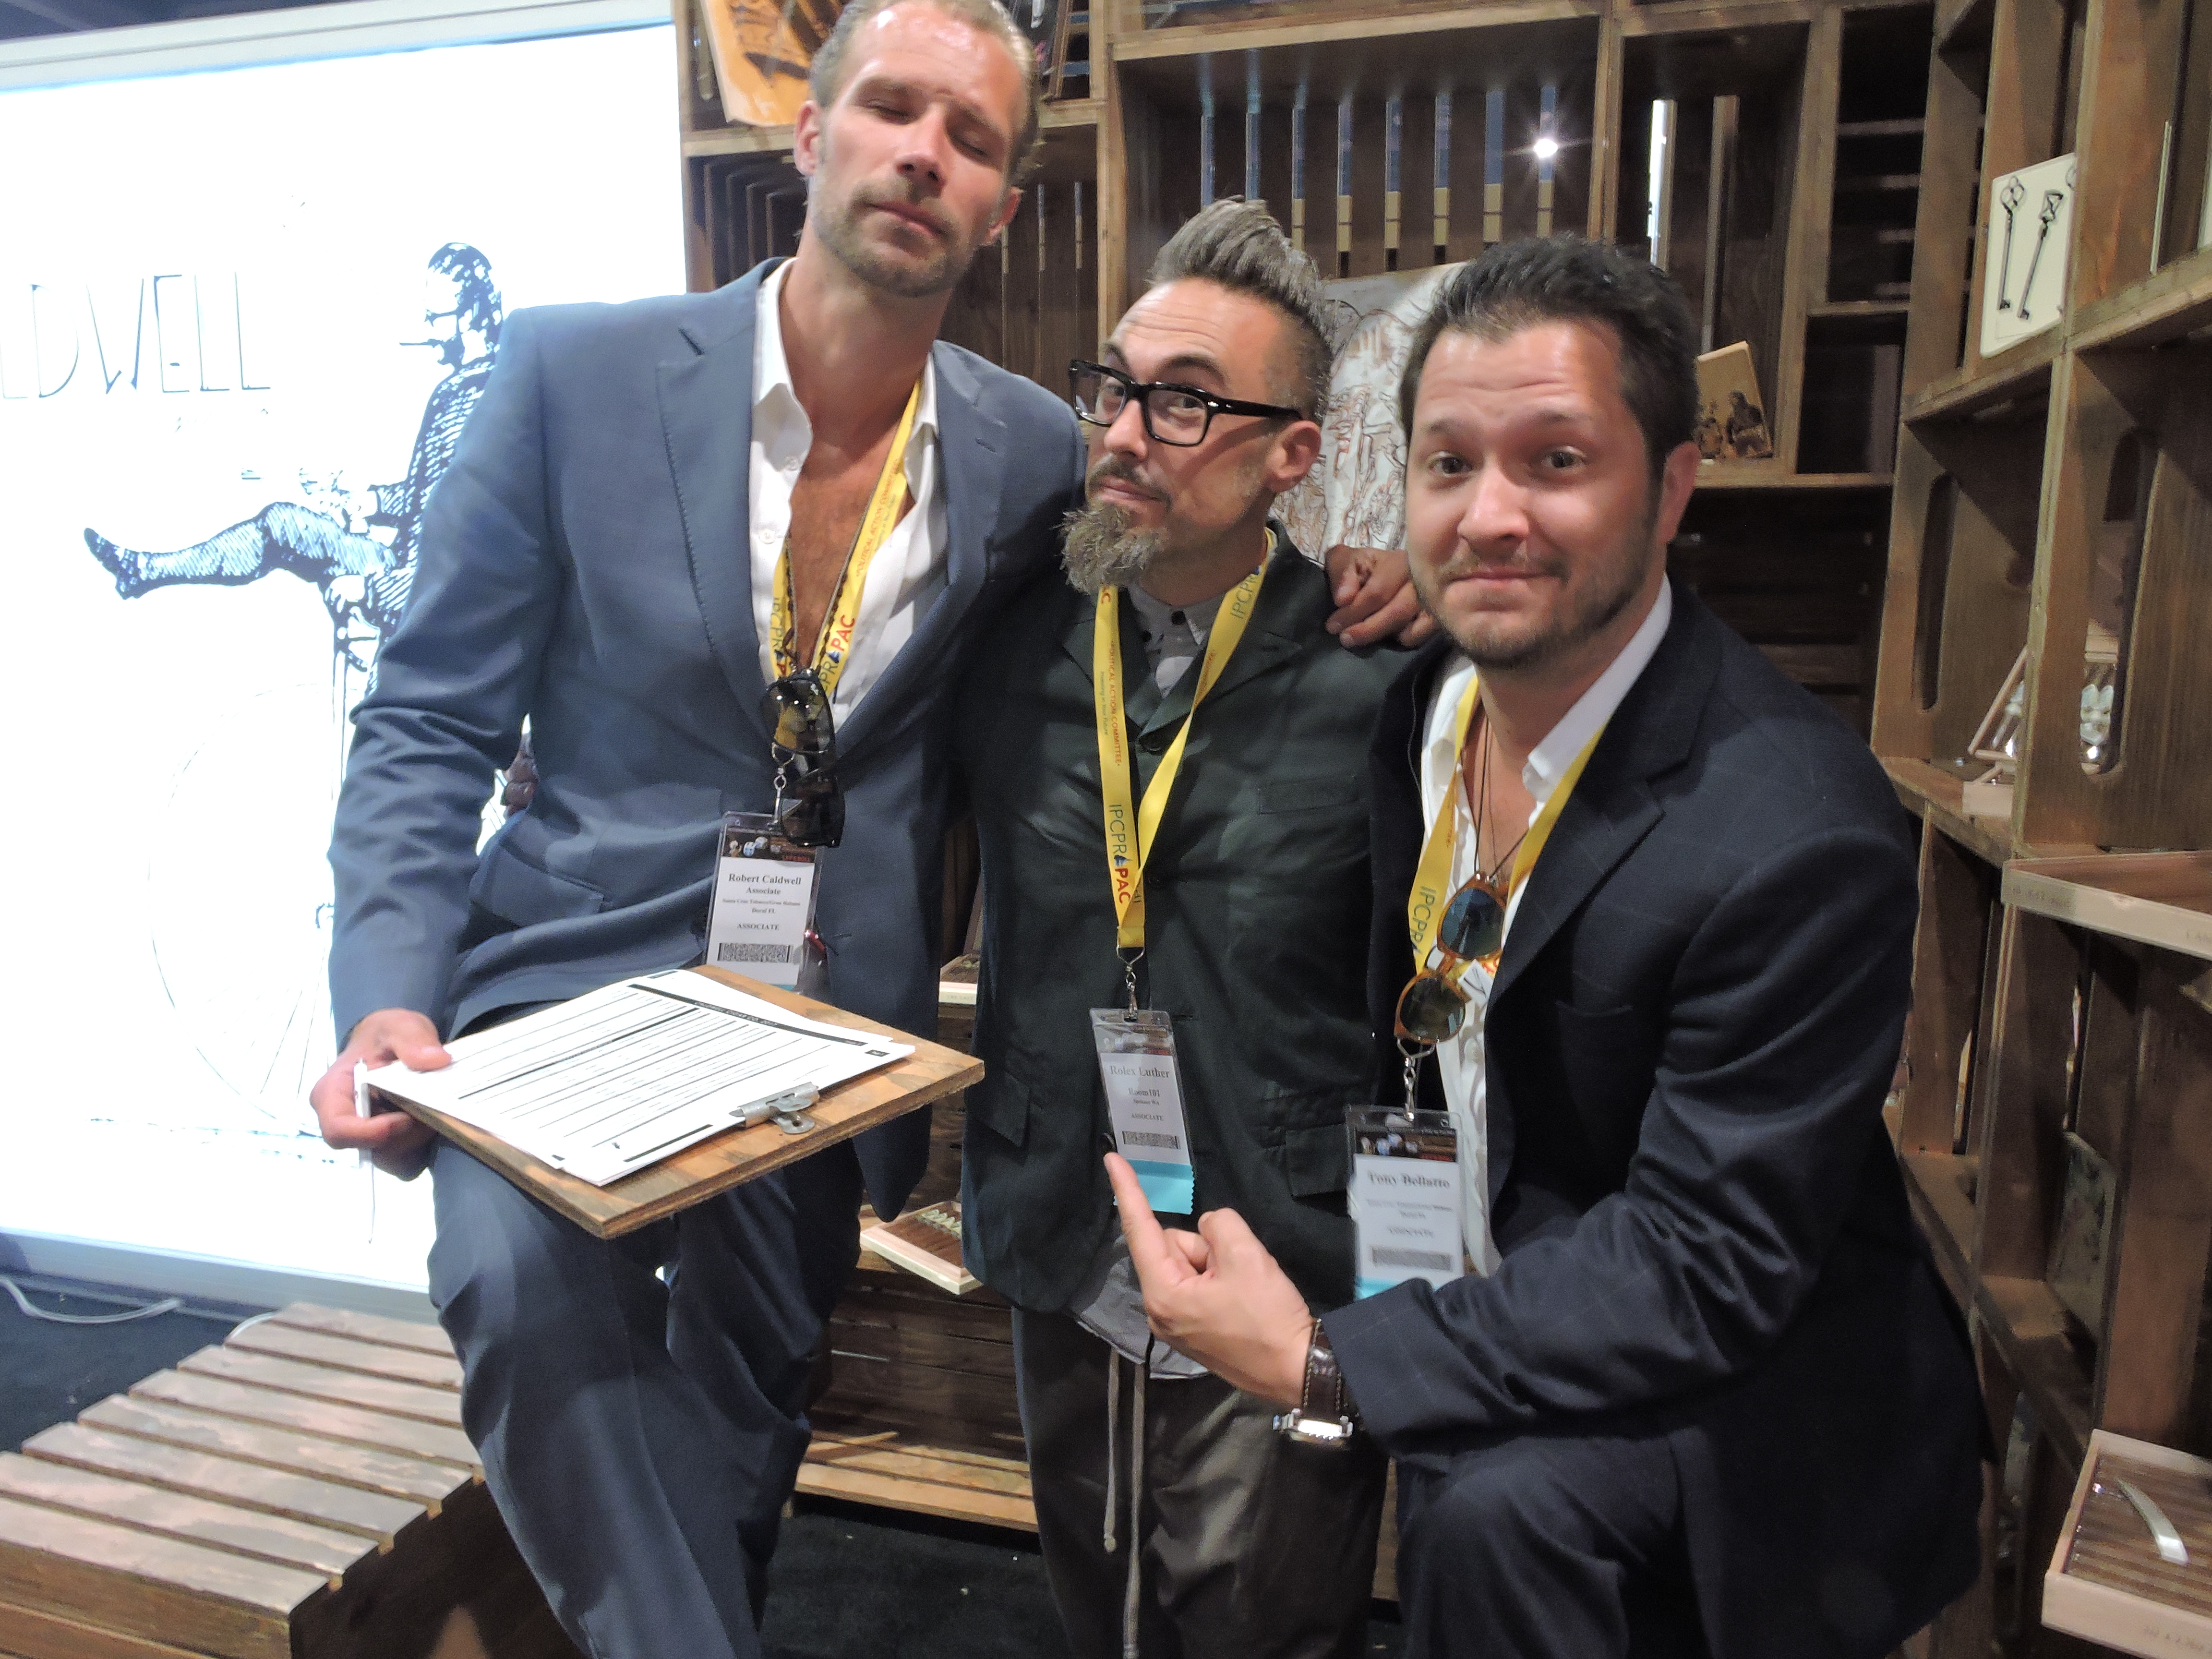 Feature Story: Spotlight on Matt Booth at the 2017 IPCPR Trade Show